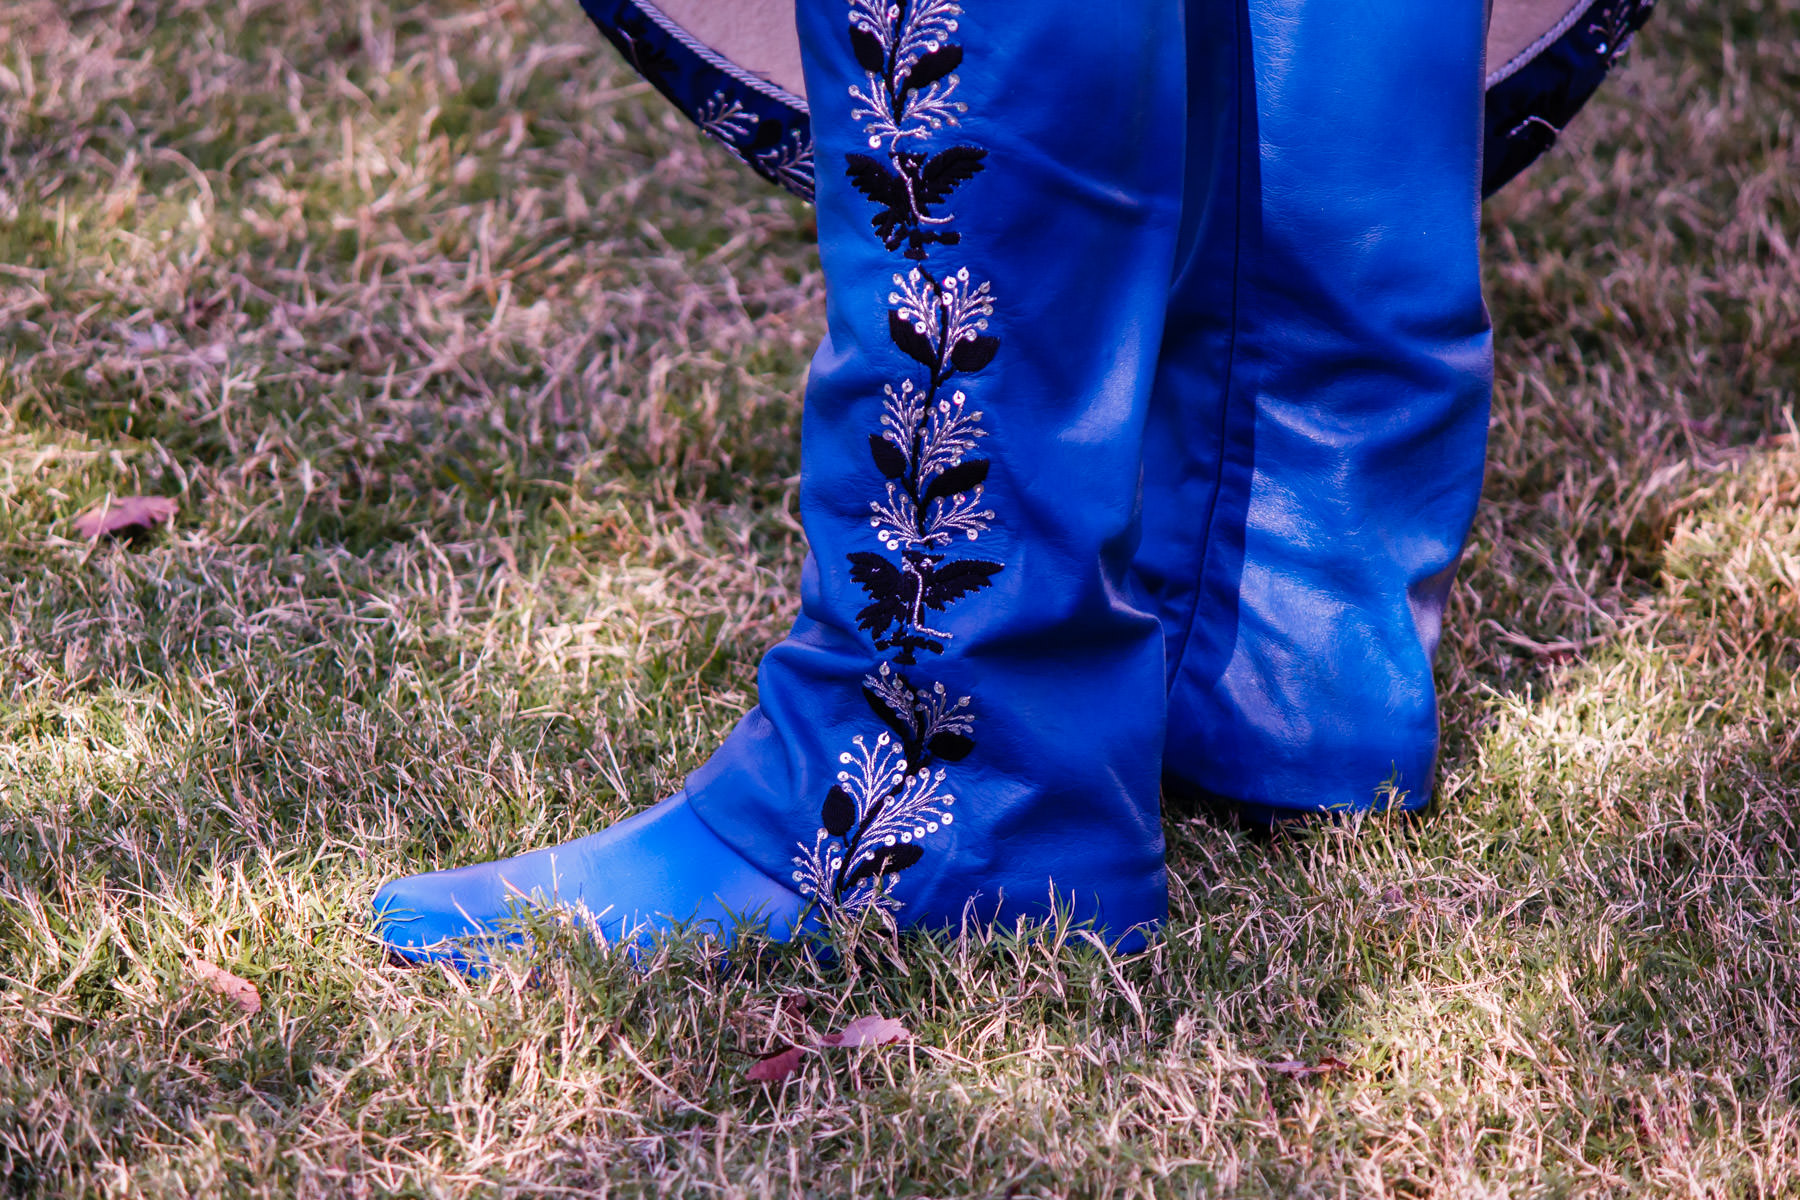 A gaucho's ornate pants and boots spotted at WorldFest, Addison, Texas.